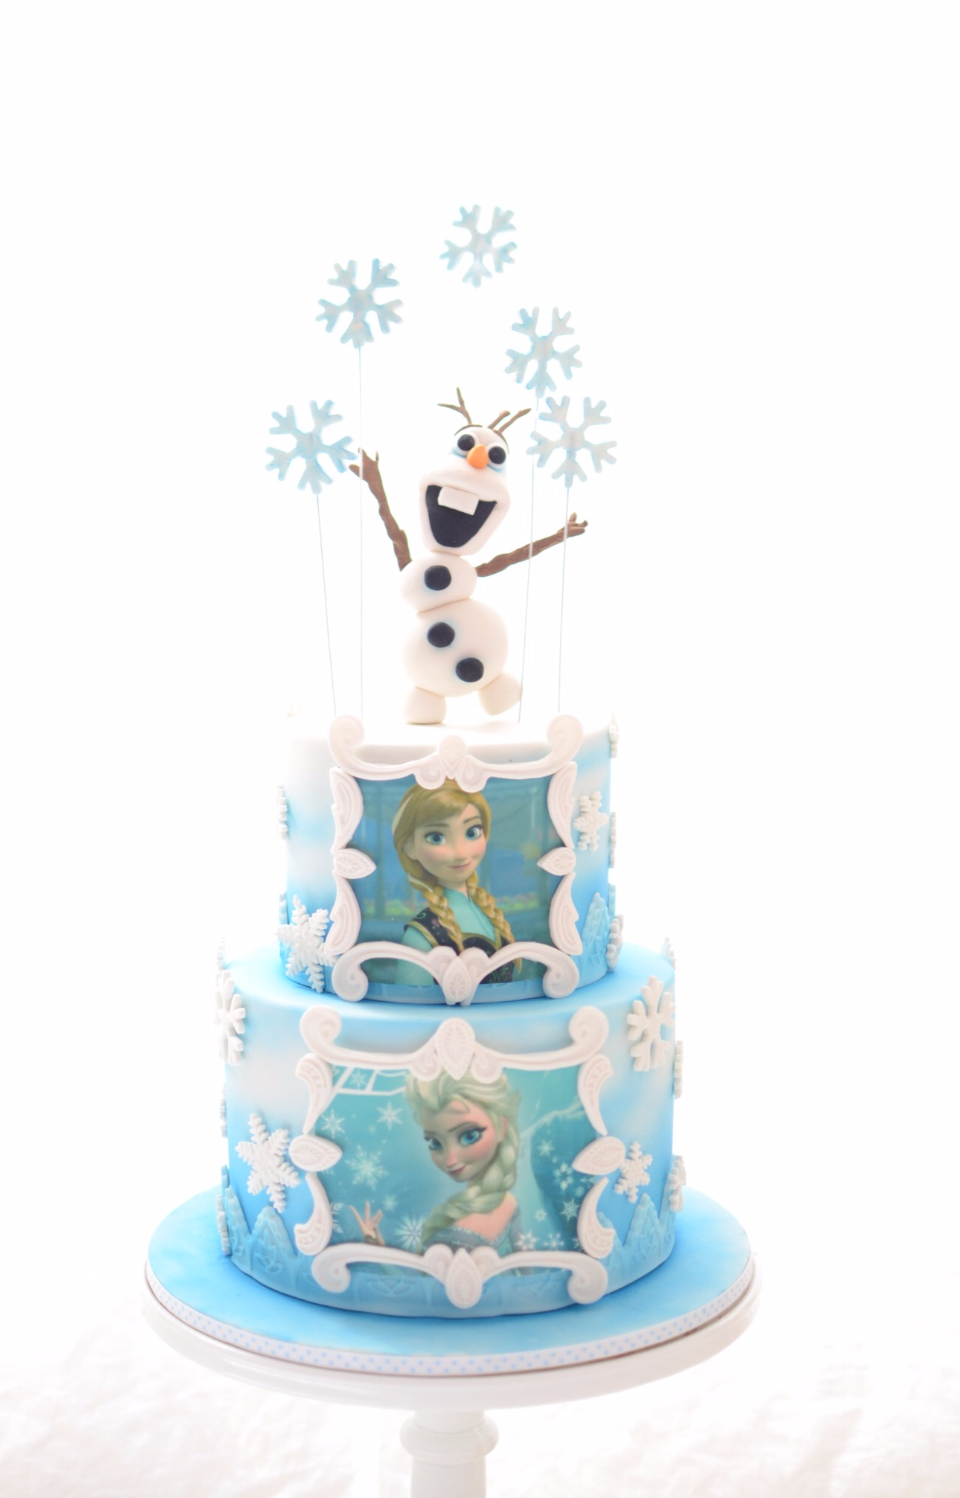 Olaf Frozen Inspired Cake